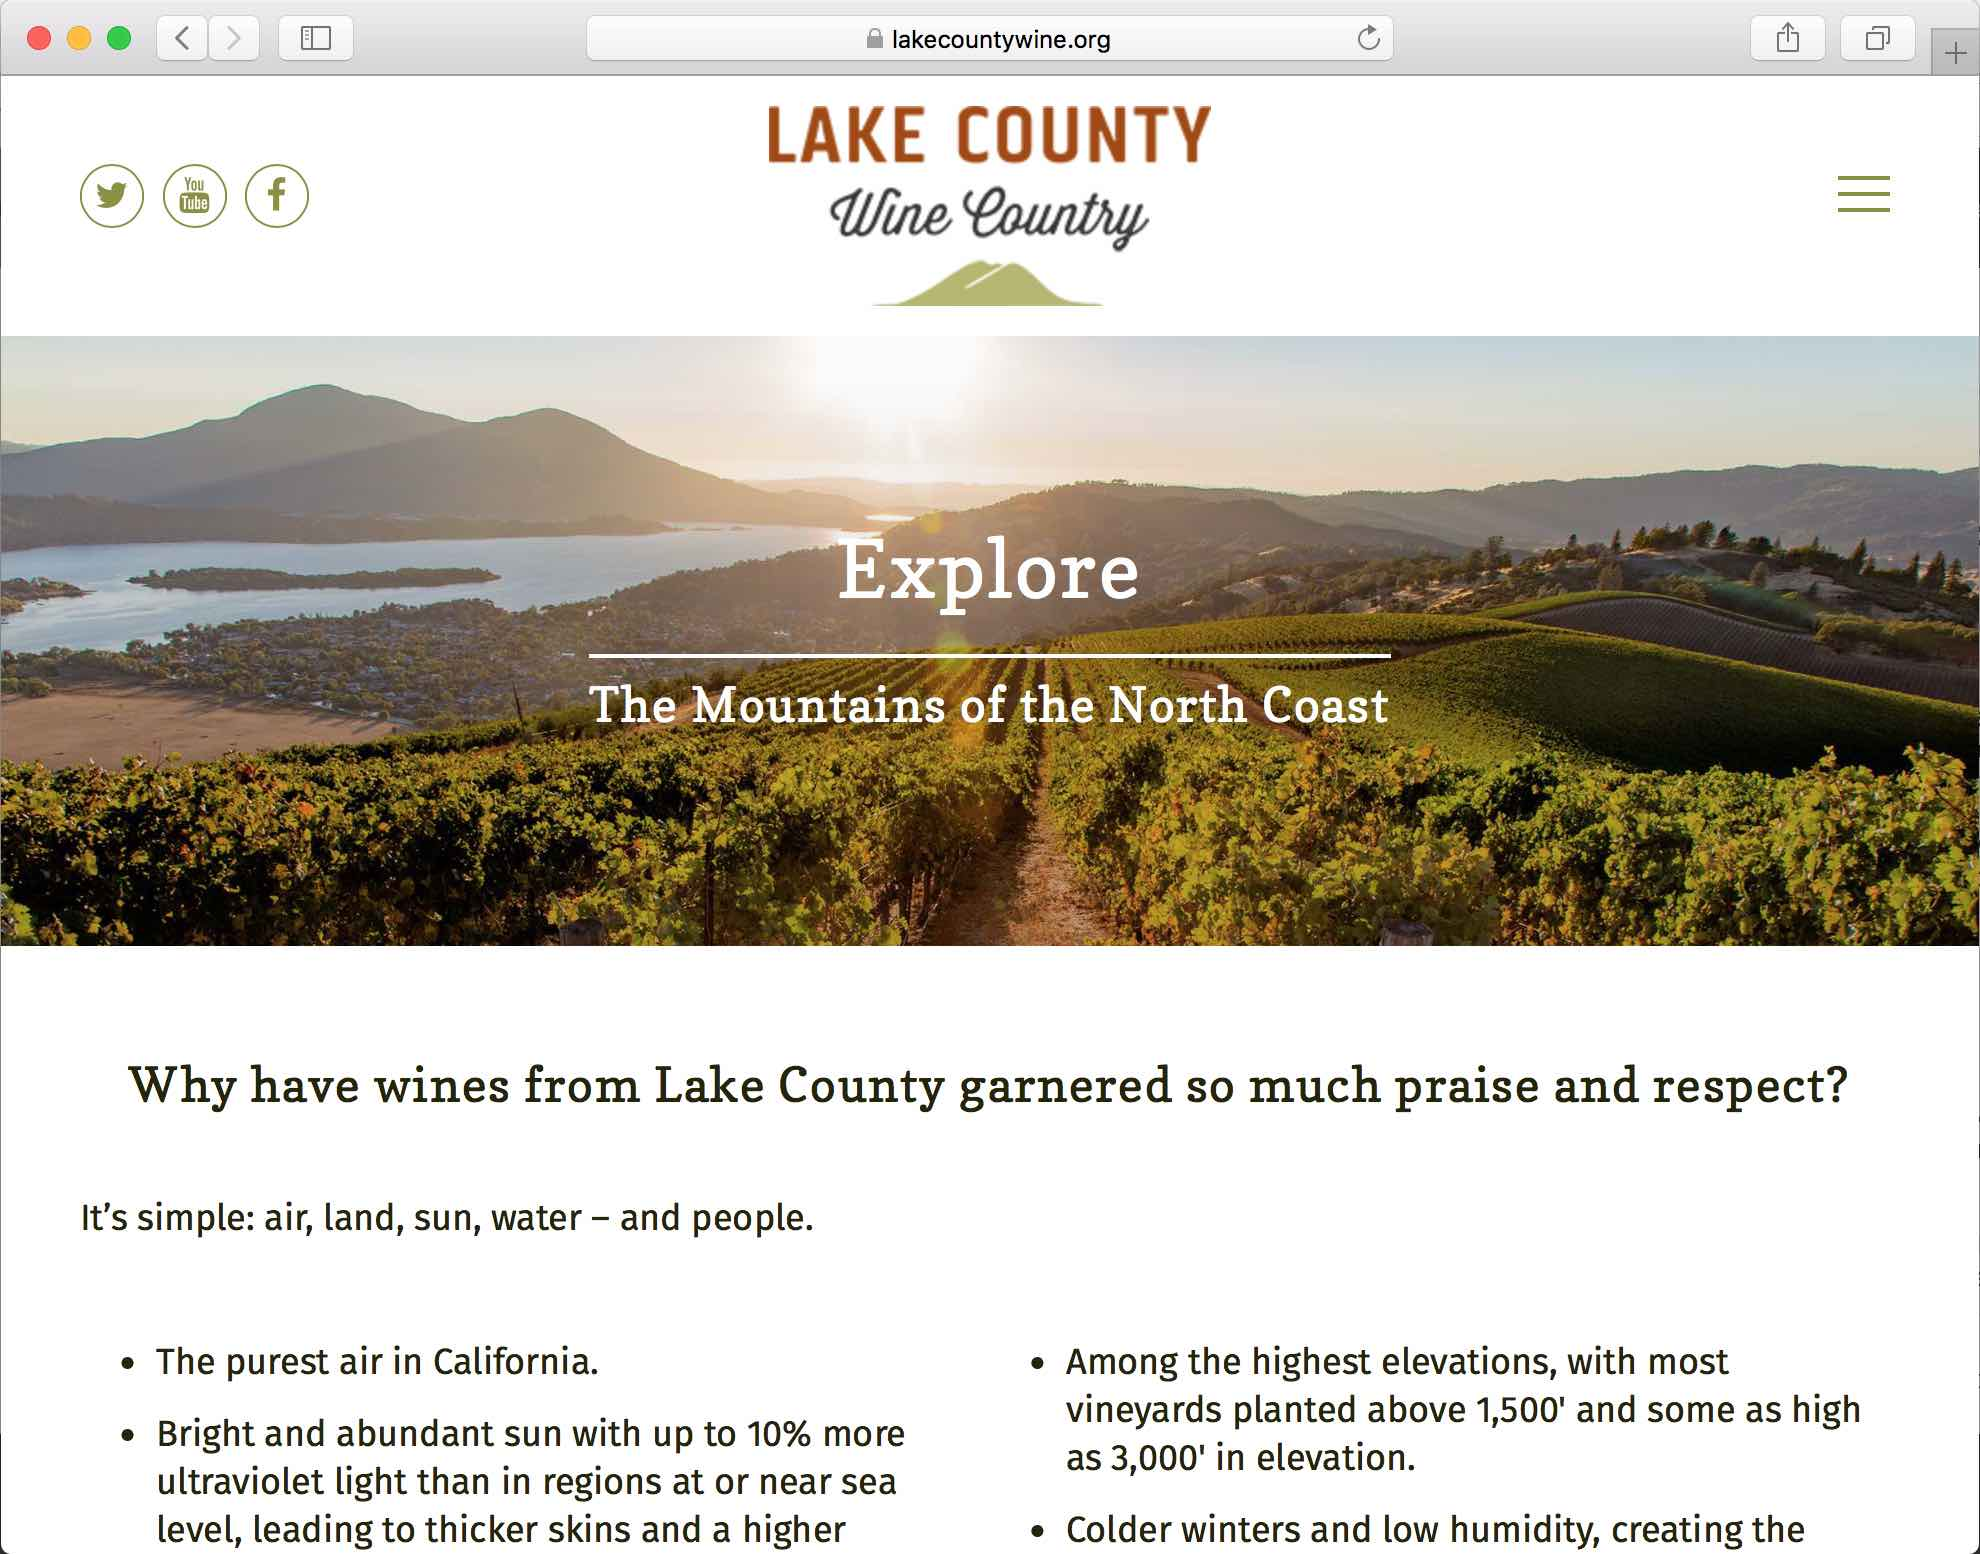 Lake County Wine Country Website